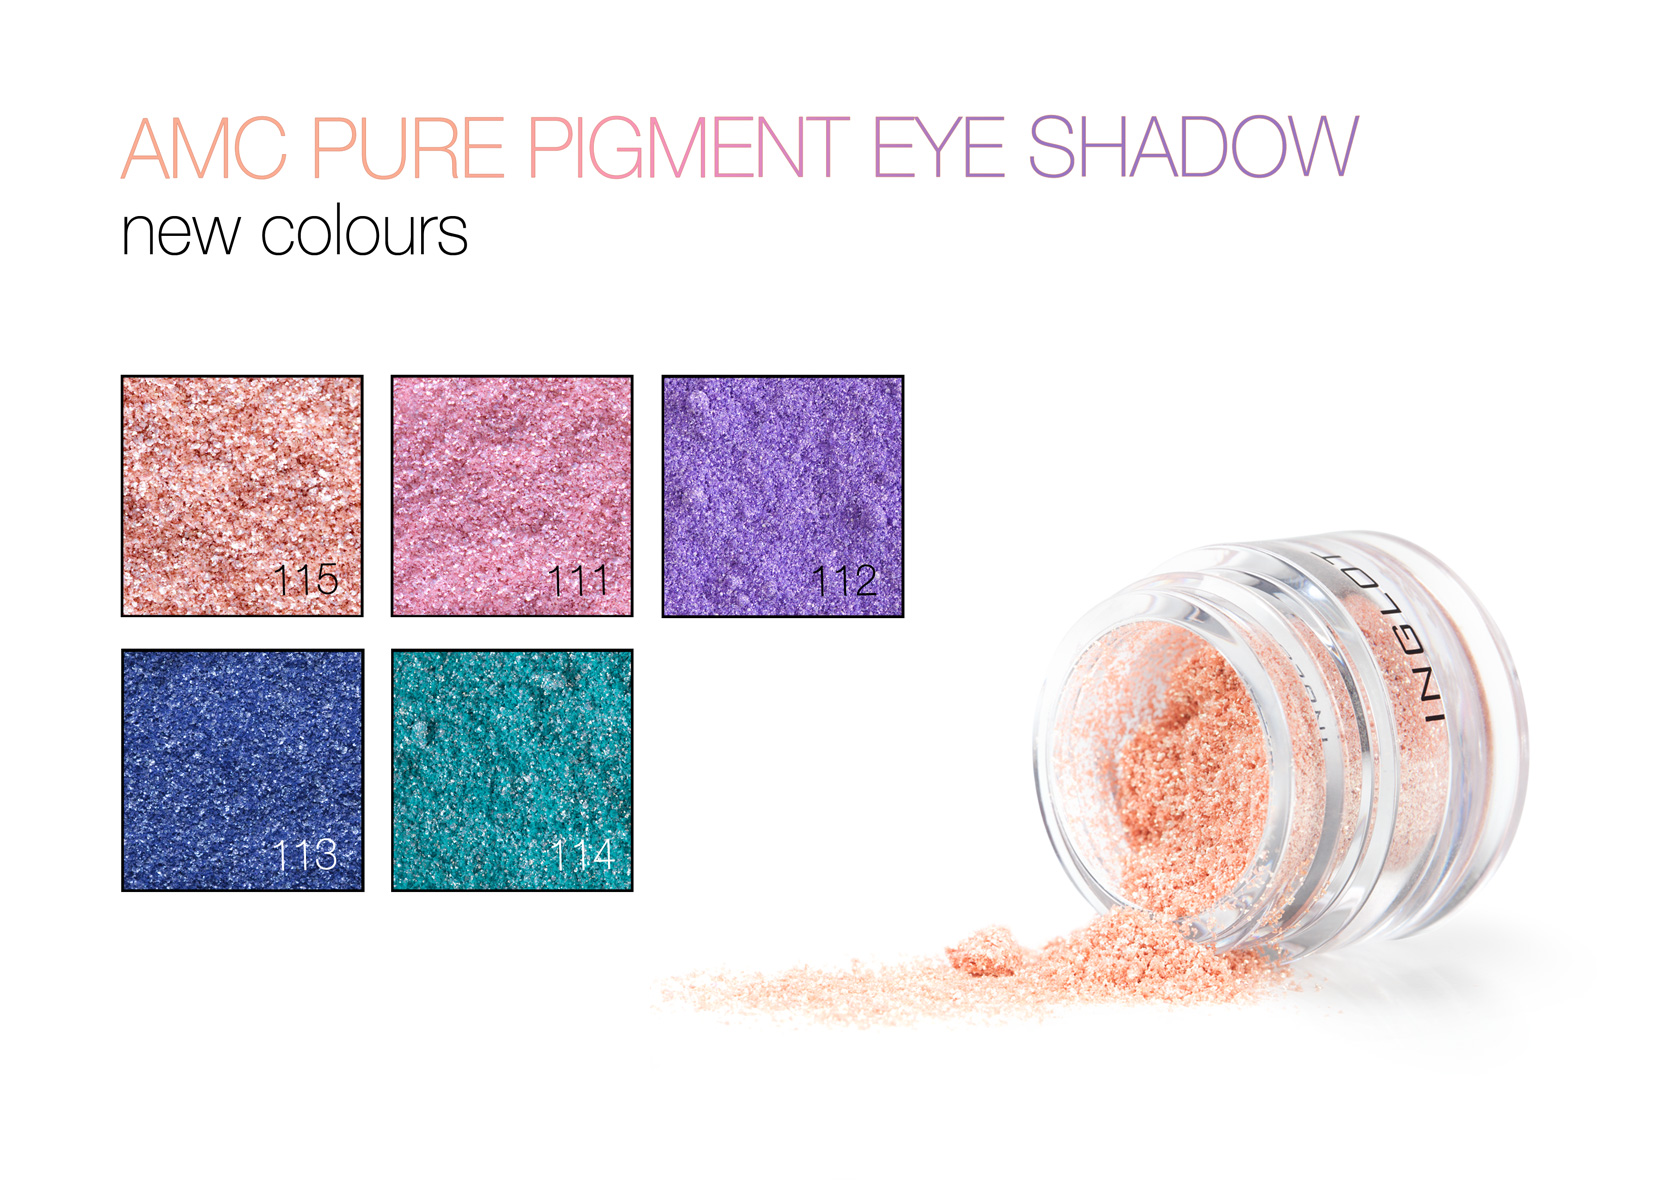 AMC Pure Pigment Eye Shadows to create an interstellar look for spring